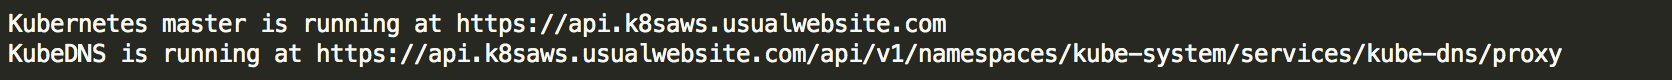 Old URL: https://support.cloudflare.com/hc/article_attachments/115003991692/Screen_Shot_2017-11-29_at_7.26.30_PM.png Article IDs: 115003384591 | Using Kubernetes on GKE and AWS with Cloudflare Load Balancer